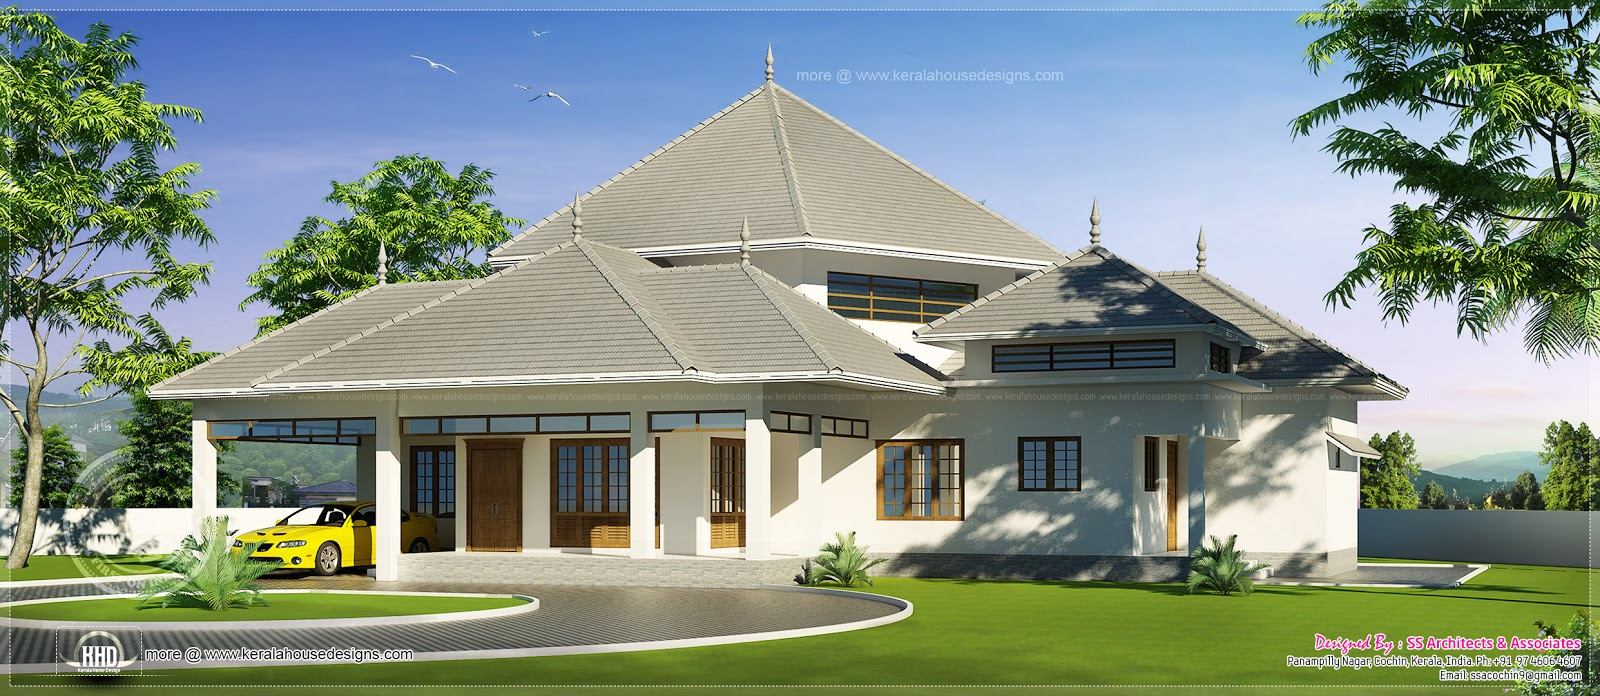 Single story house roof designs single story house plans for One story house plans with porch